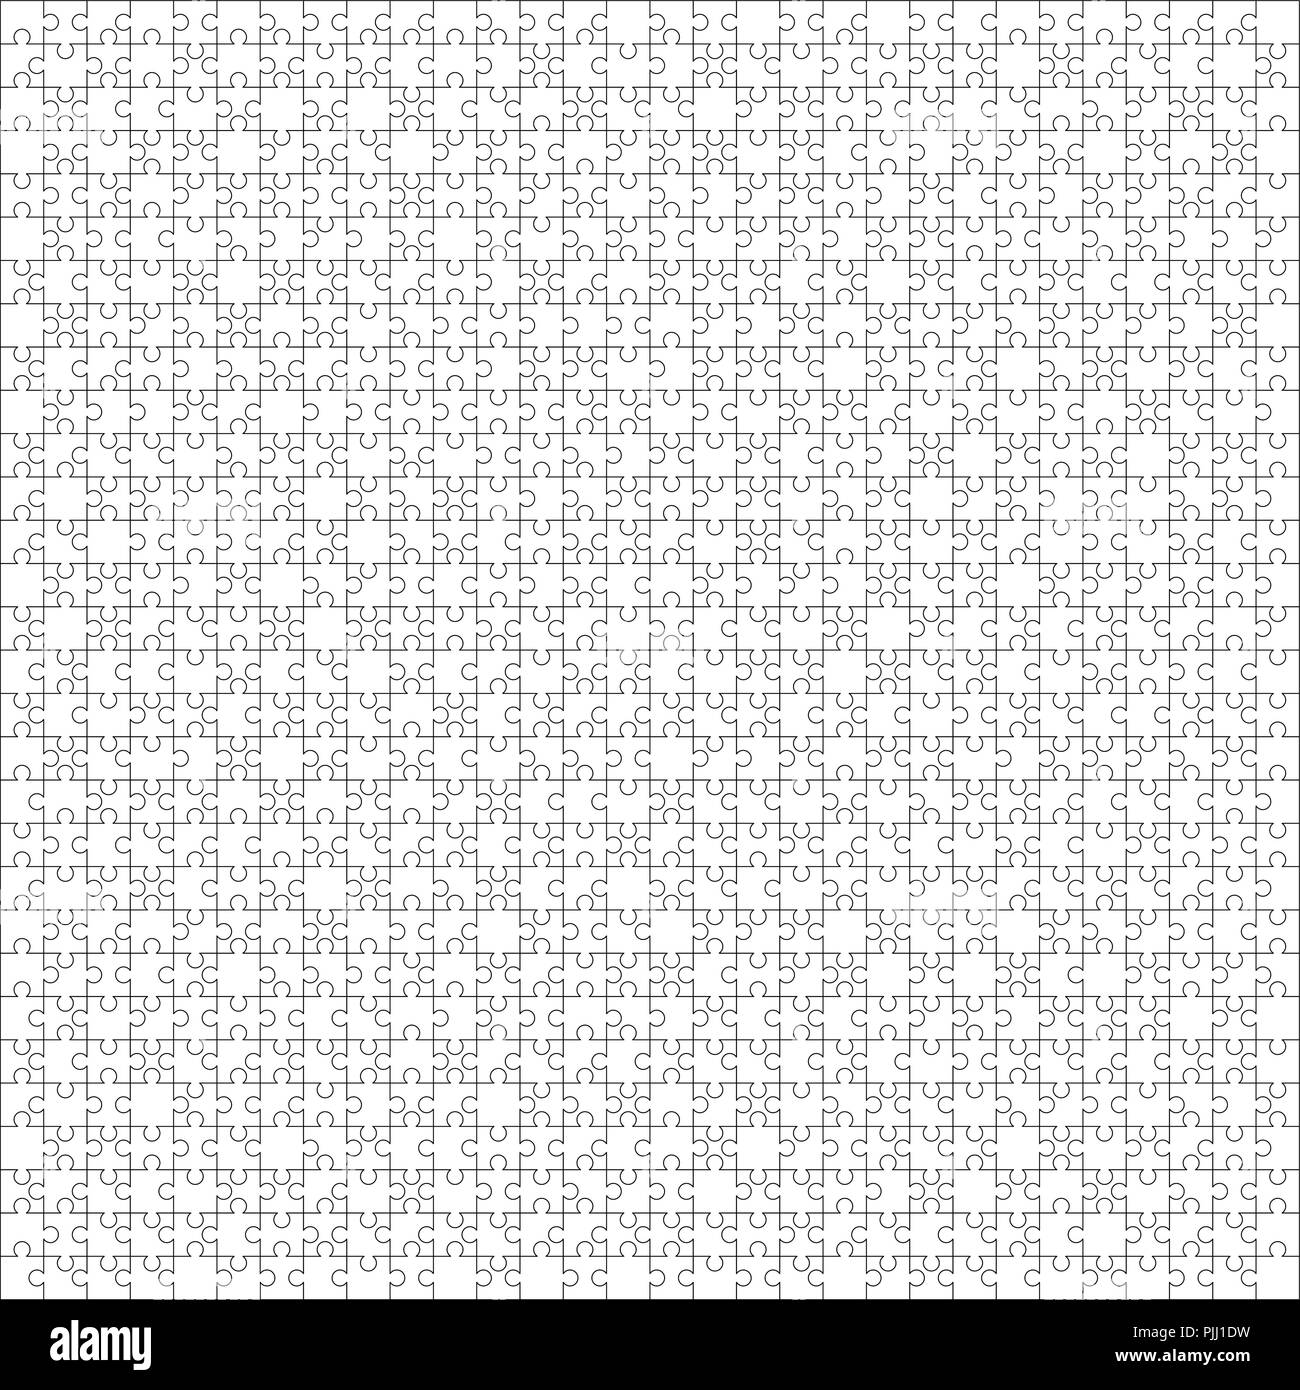 This is a photo of Printable Puzzle Piece Template intended for pattern